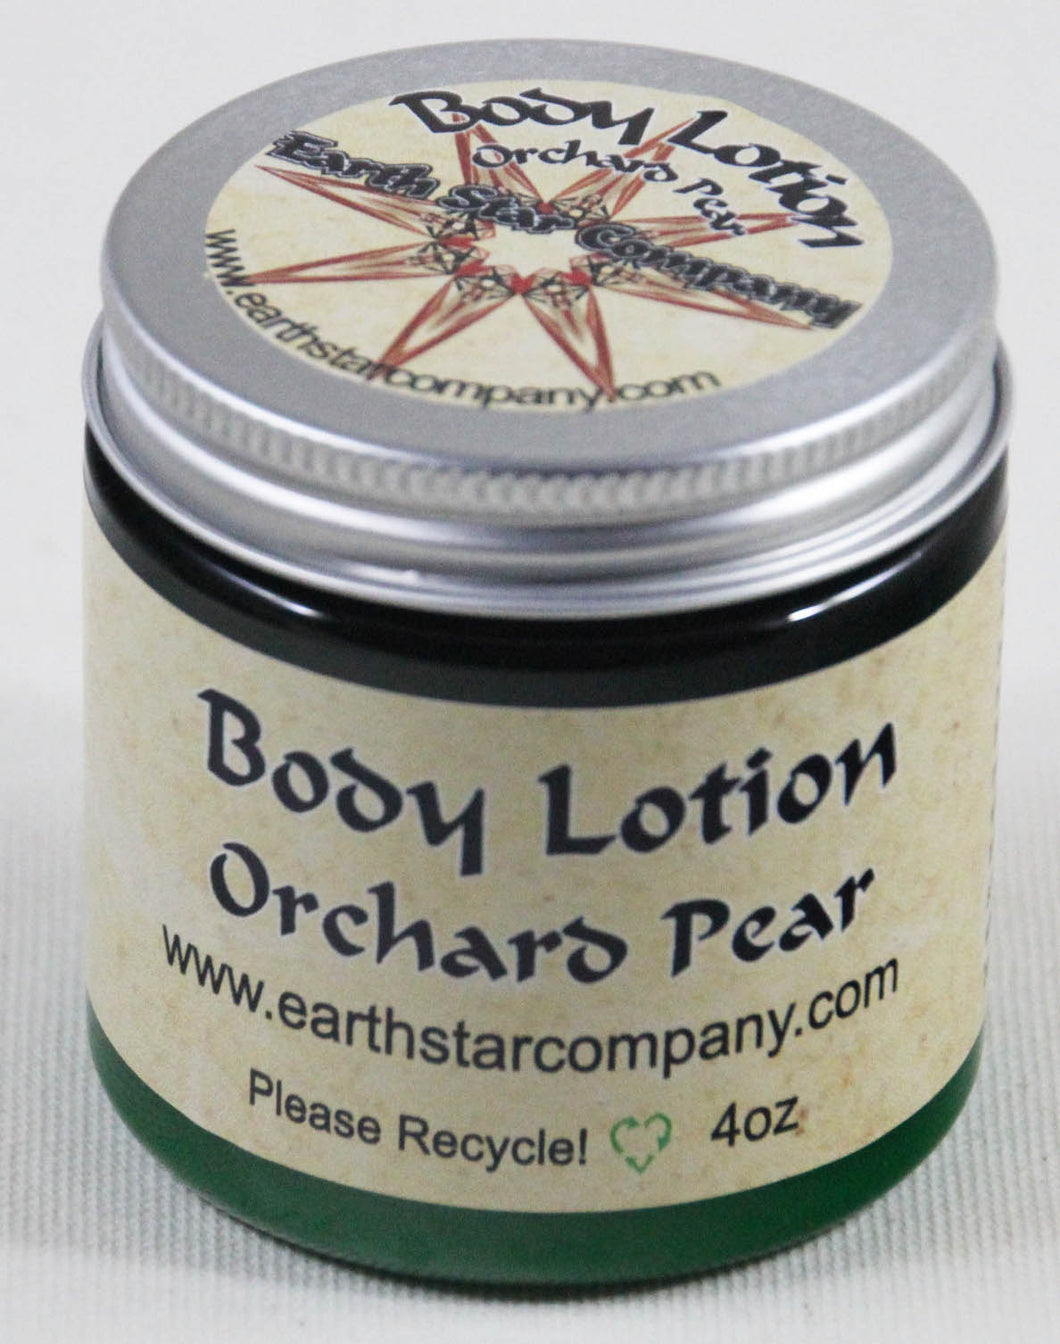 Orchard Pear Body Lotion